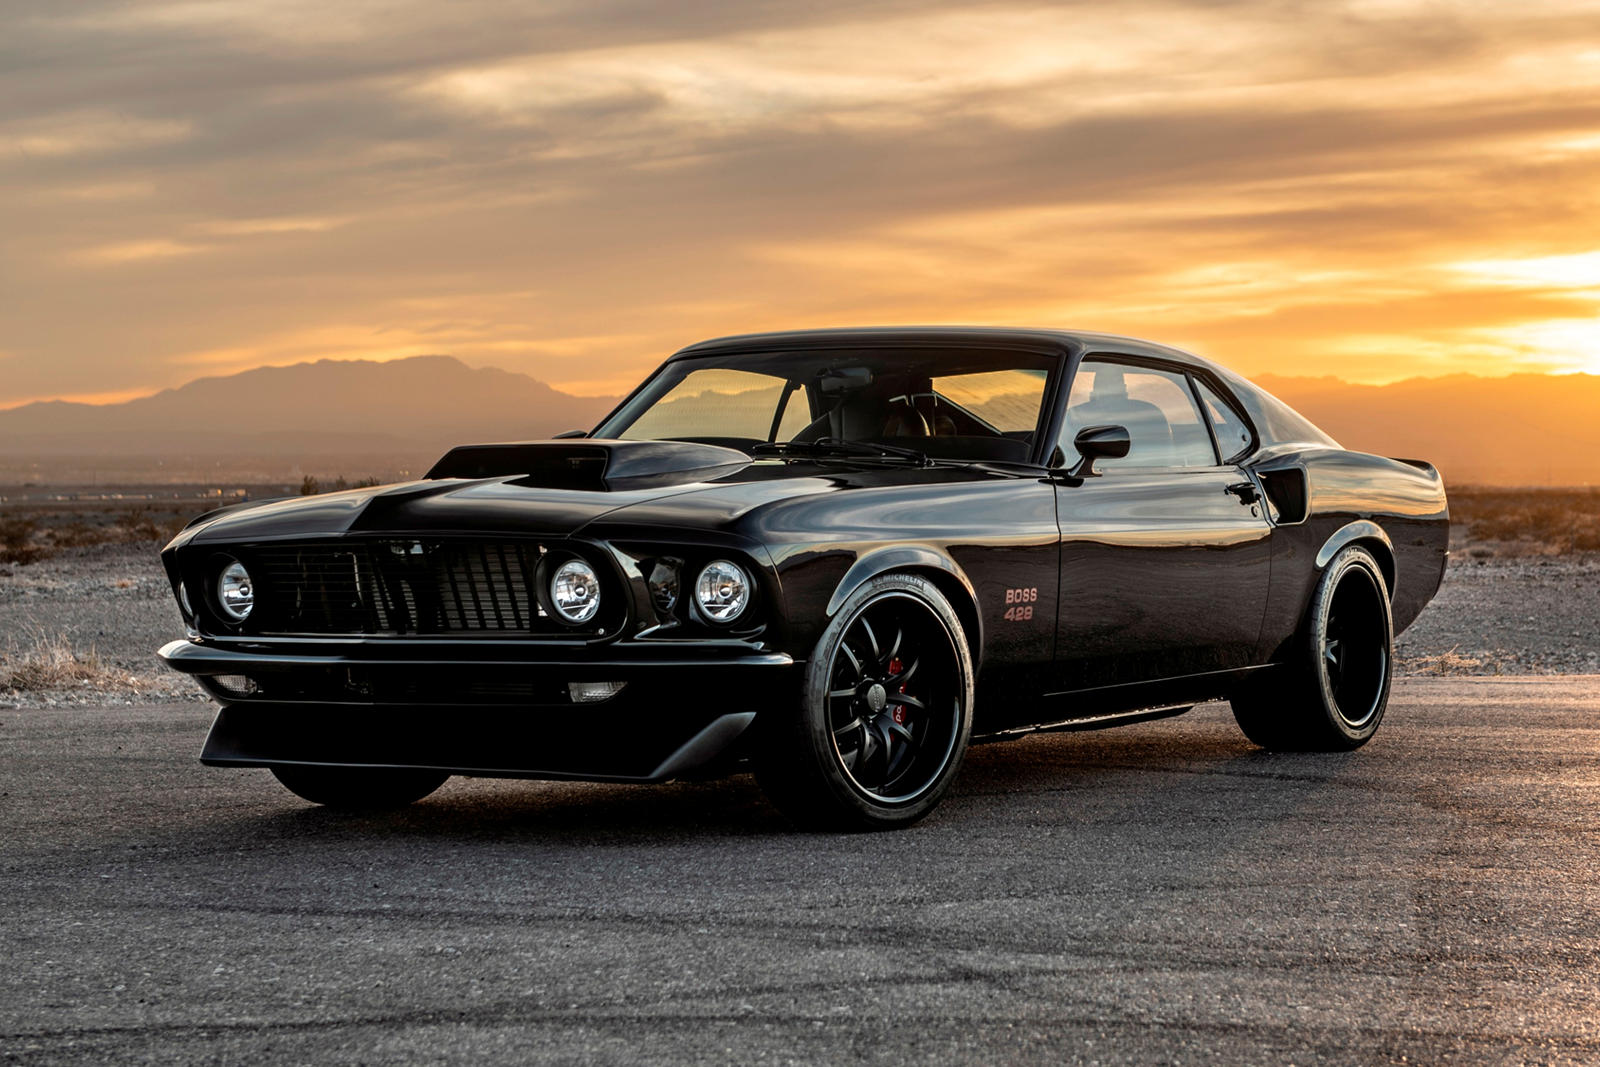 Ford Mustang Boss 429 : ford mustang boss 429 is back in production with 815 hp ~ Dallasstarsshop.com Idées de Décoration